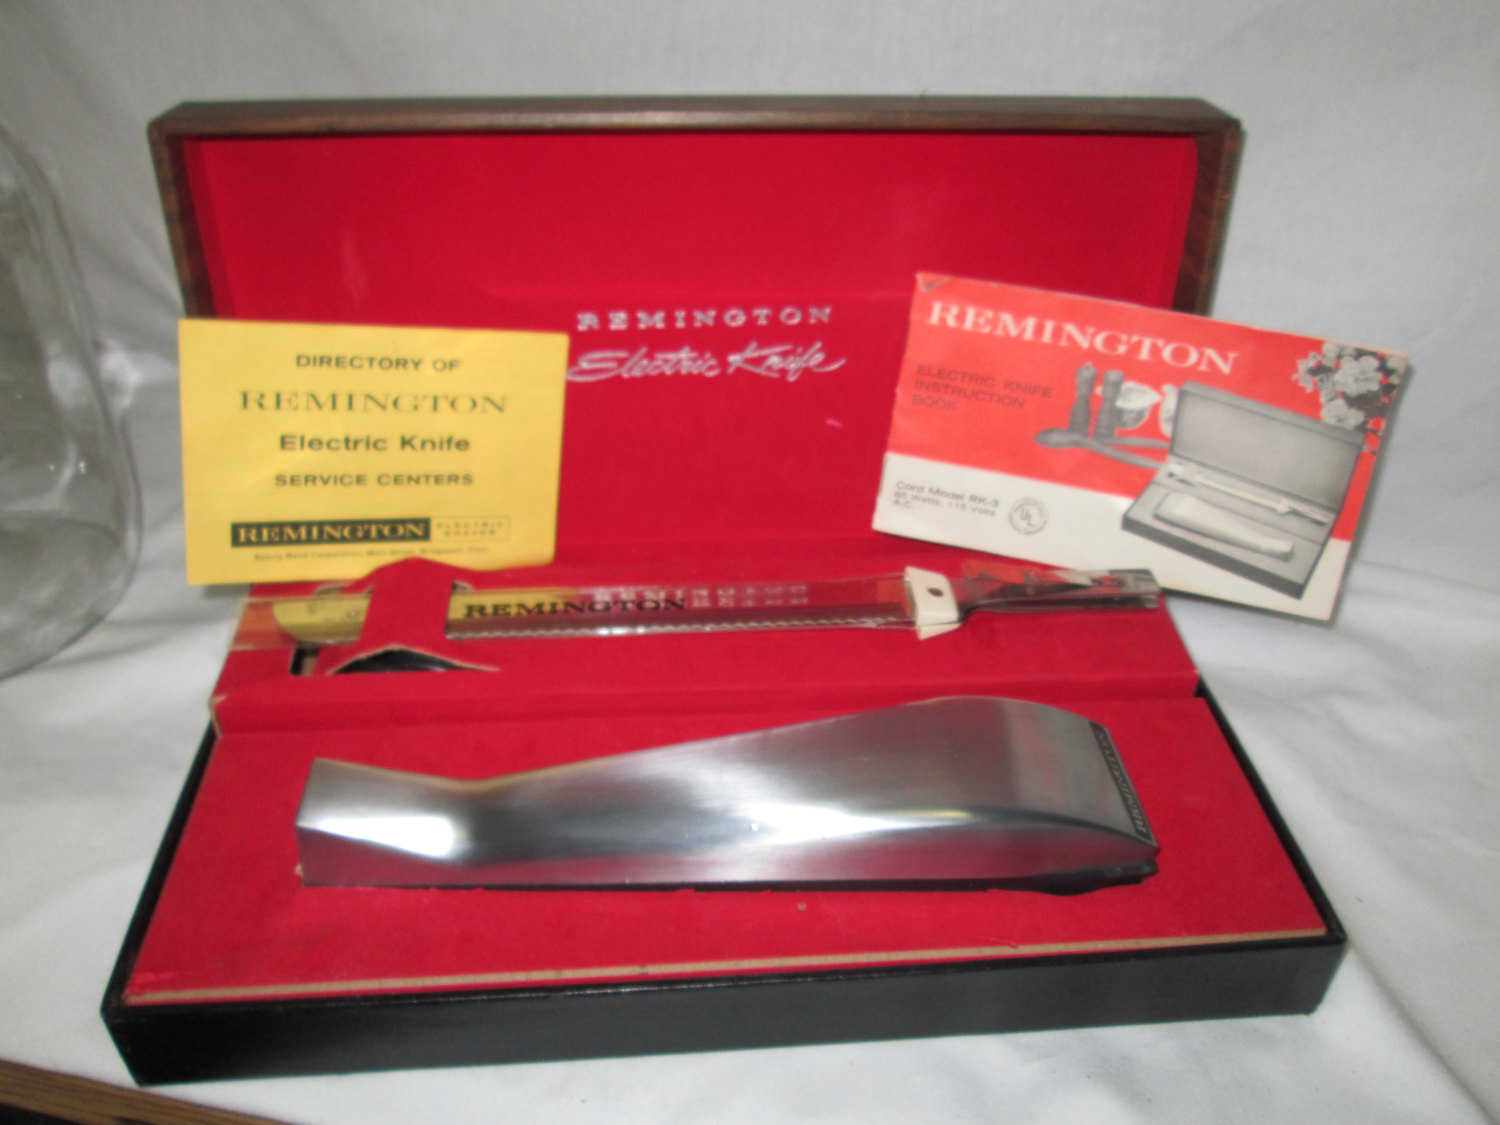 Vintage Modern Sleek Remington Electric Knife Stainless Steel 1966 Cord  Model Instructions, cord, box Dining Serving Kitchen Thanksgiving